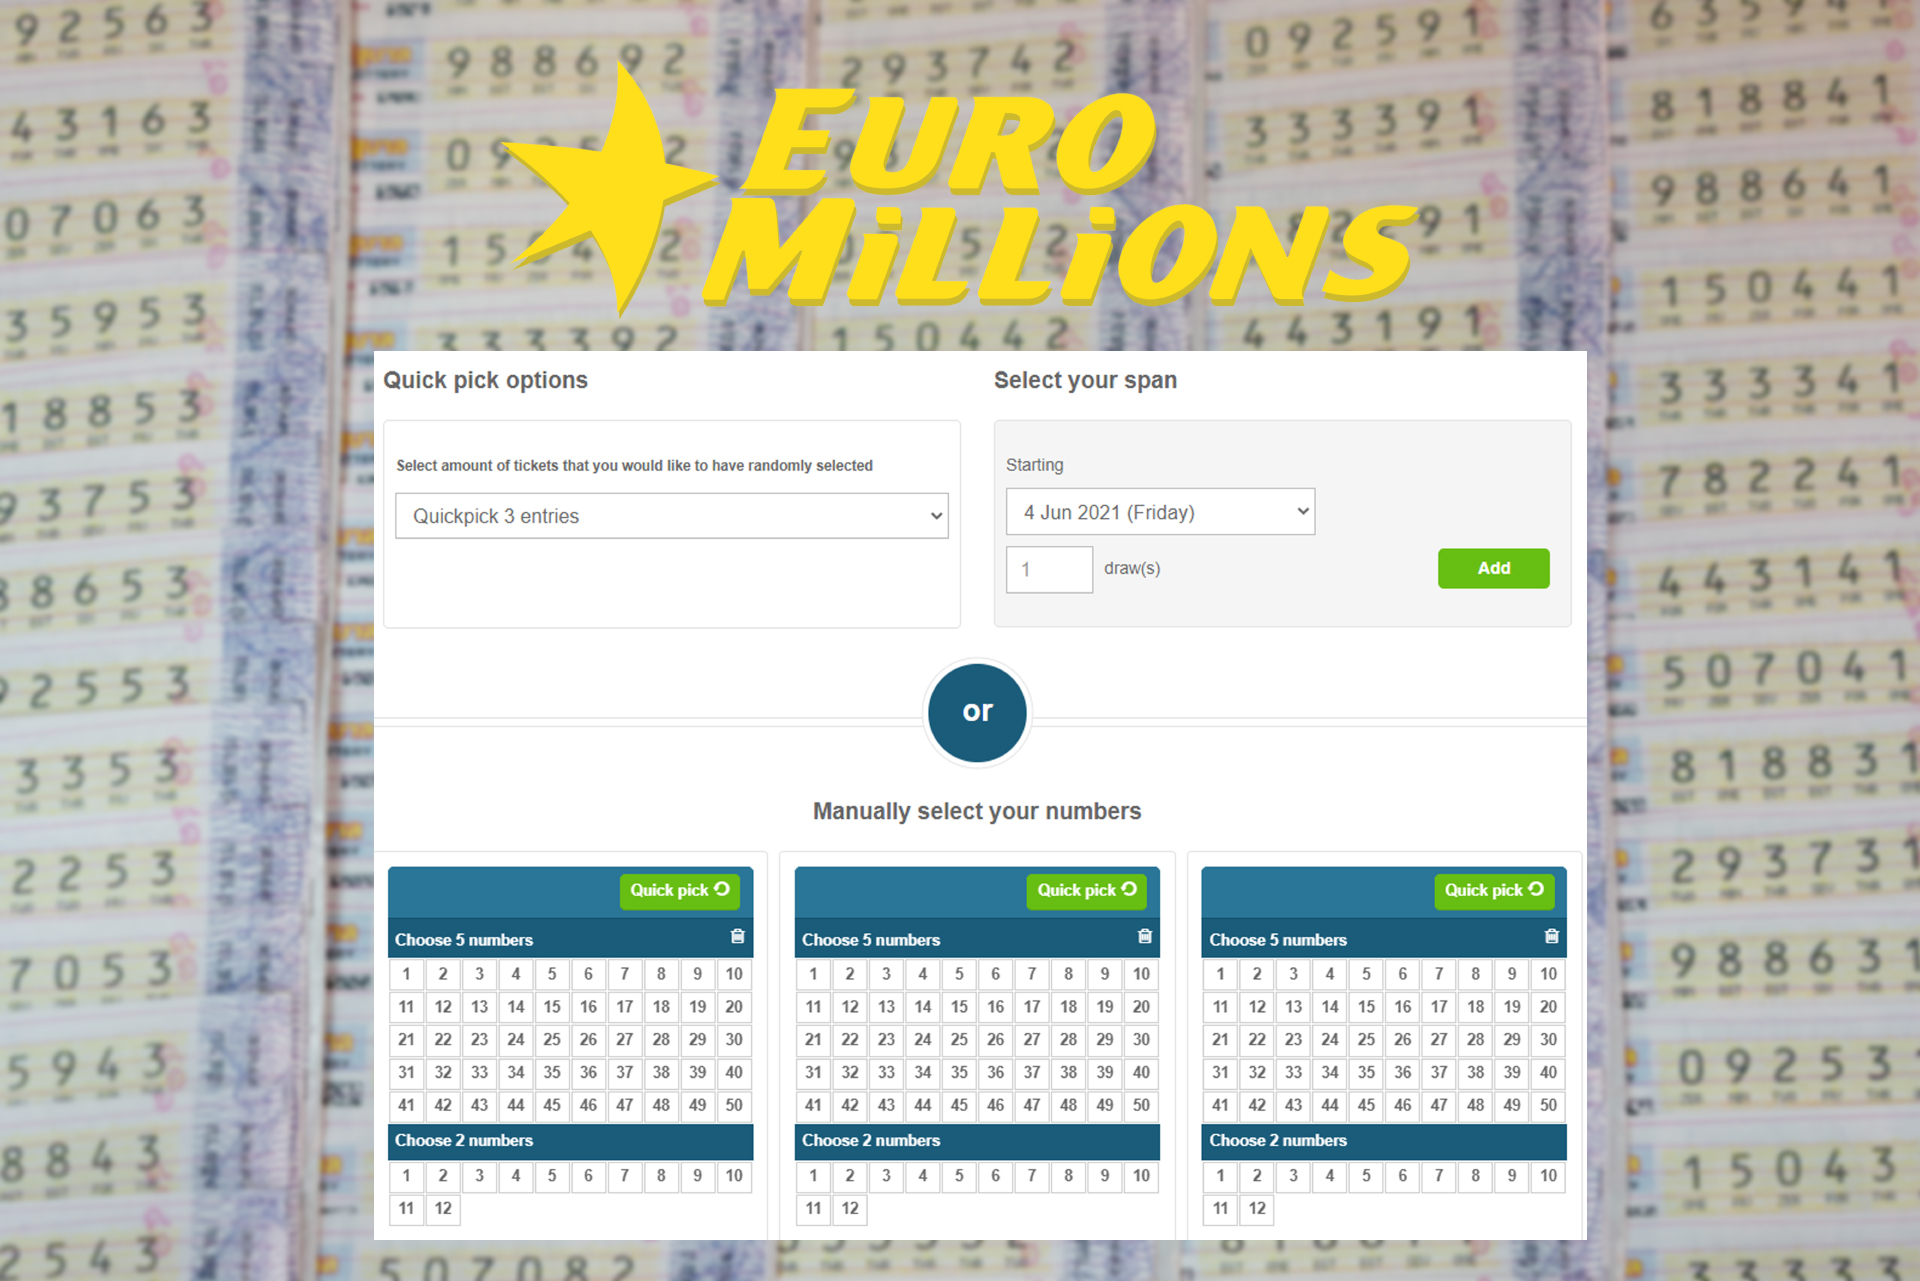 EuroMillions suggests to users to win a jackpot of 190 million euros.